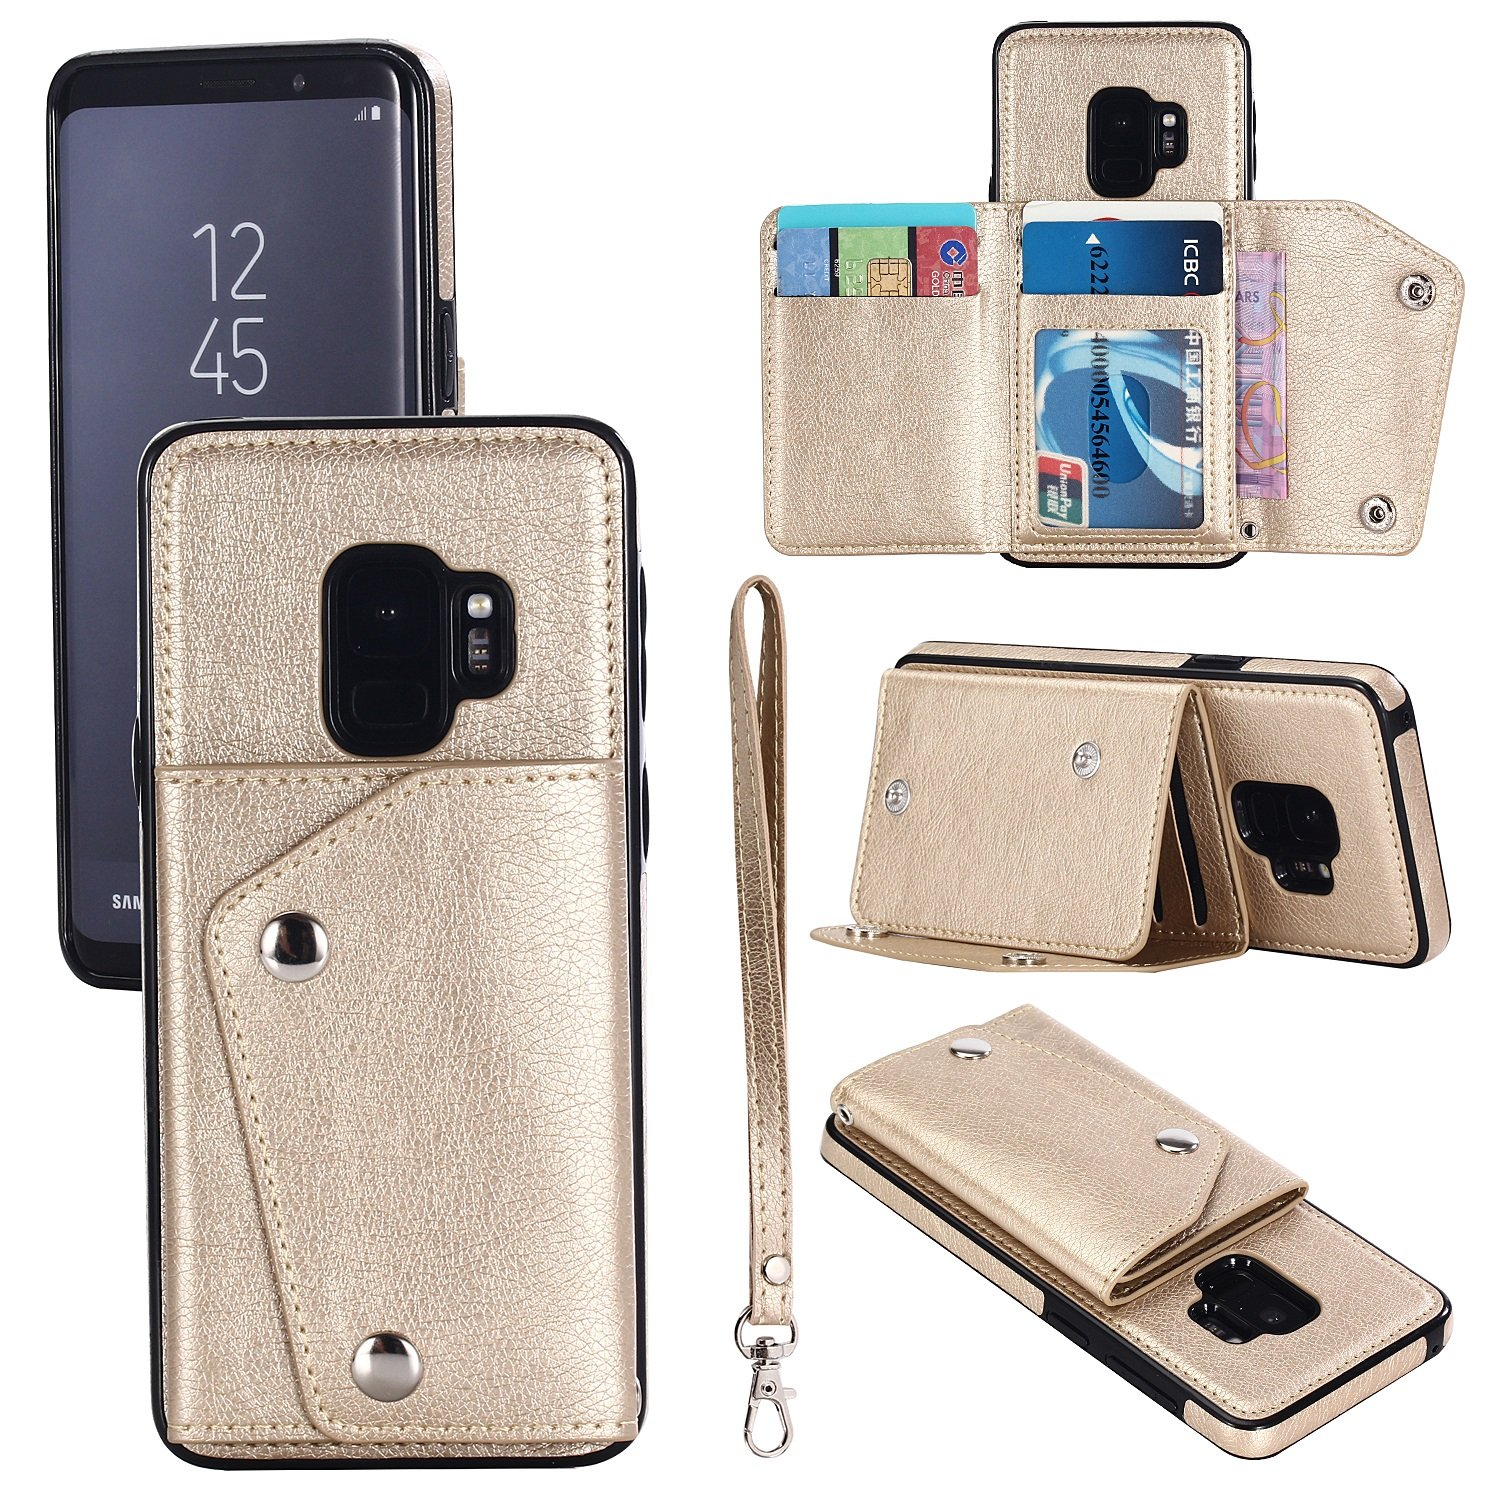 Samsung S8 Plus Leather Phone Case Wallet Smart Kickstand Card Holder Cover with Hand Straps, Dark Brown FLY HAWK KDS03052-ZongSe-S8 Plus@#CAGDF